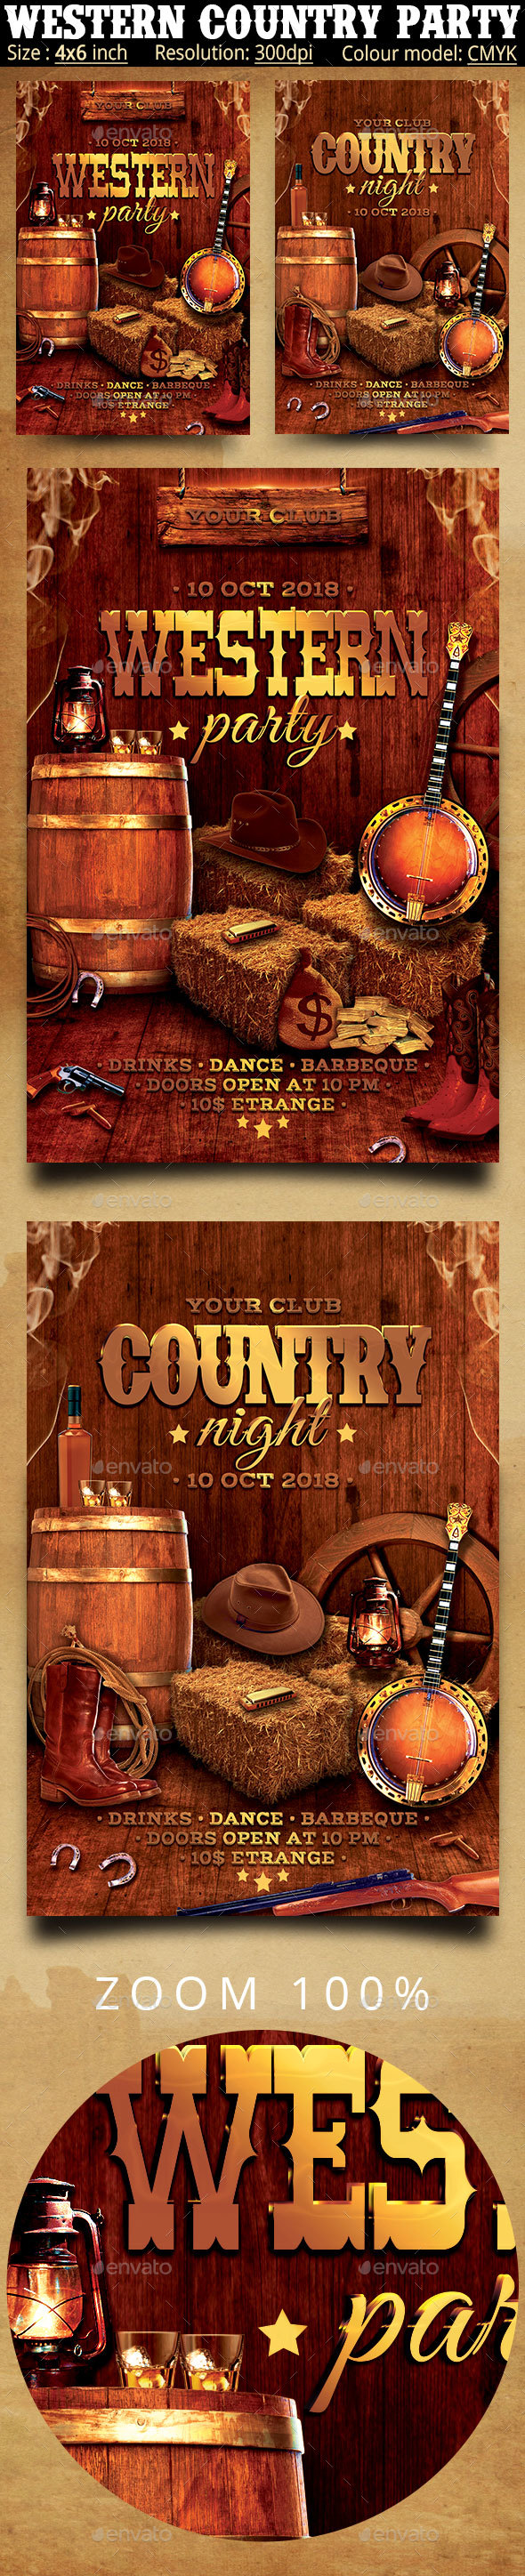 Western Country Music Party Flyer - Clubs & Parties Events